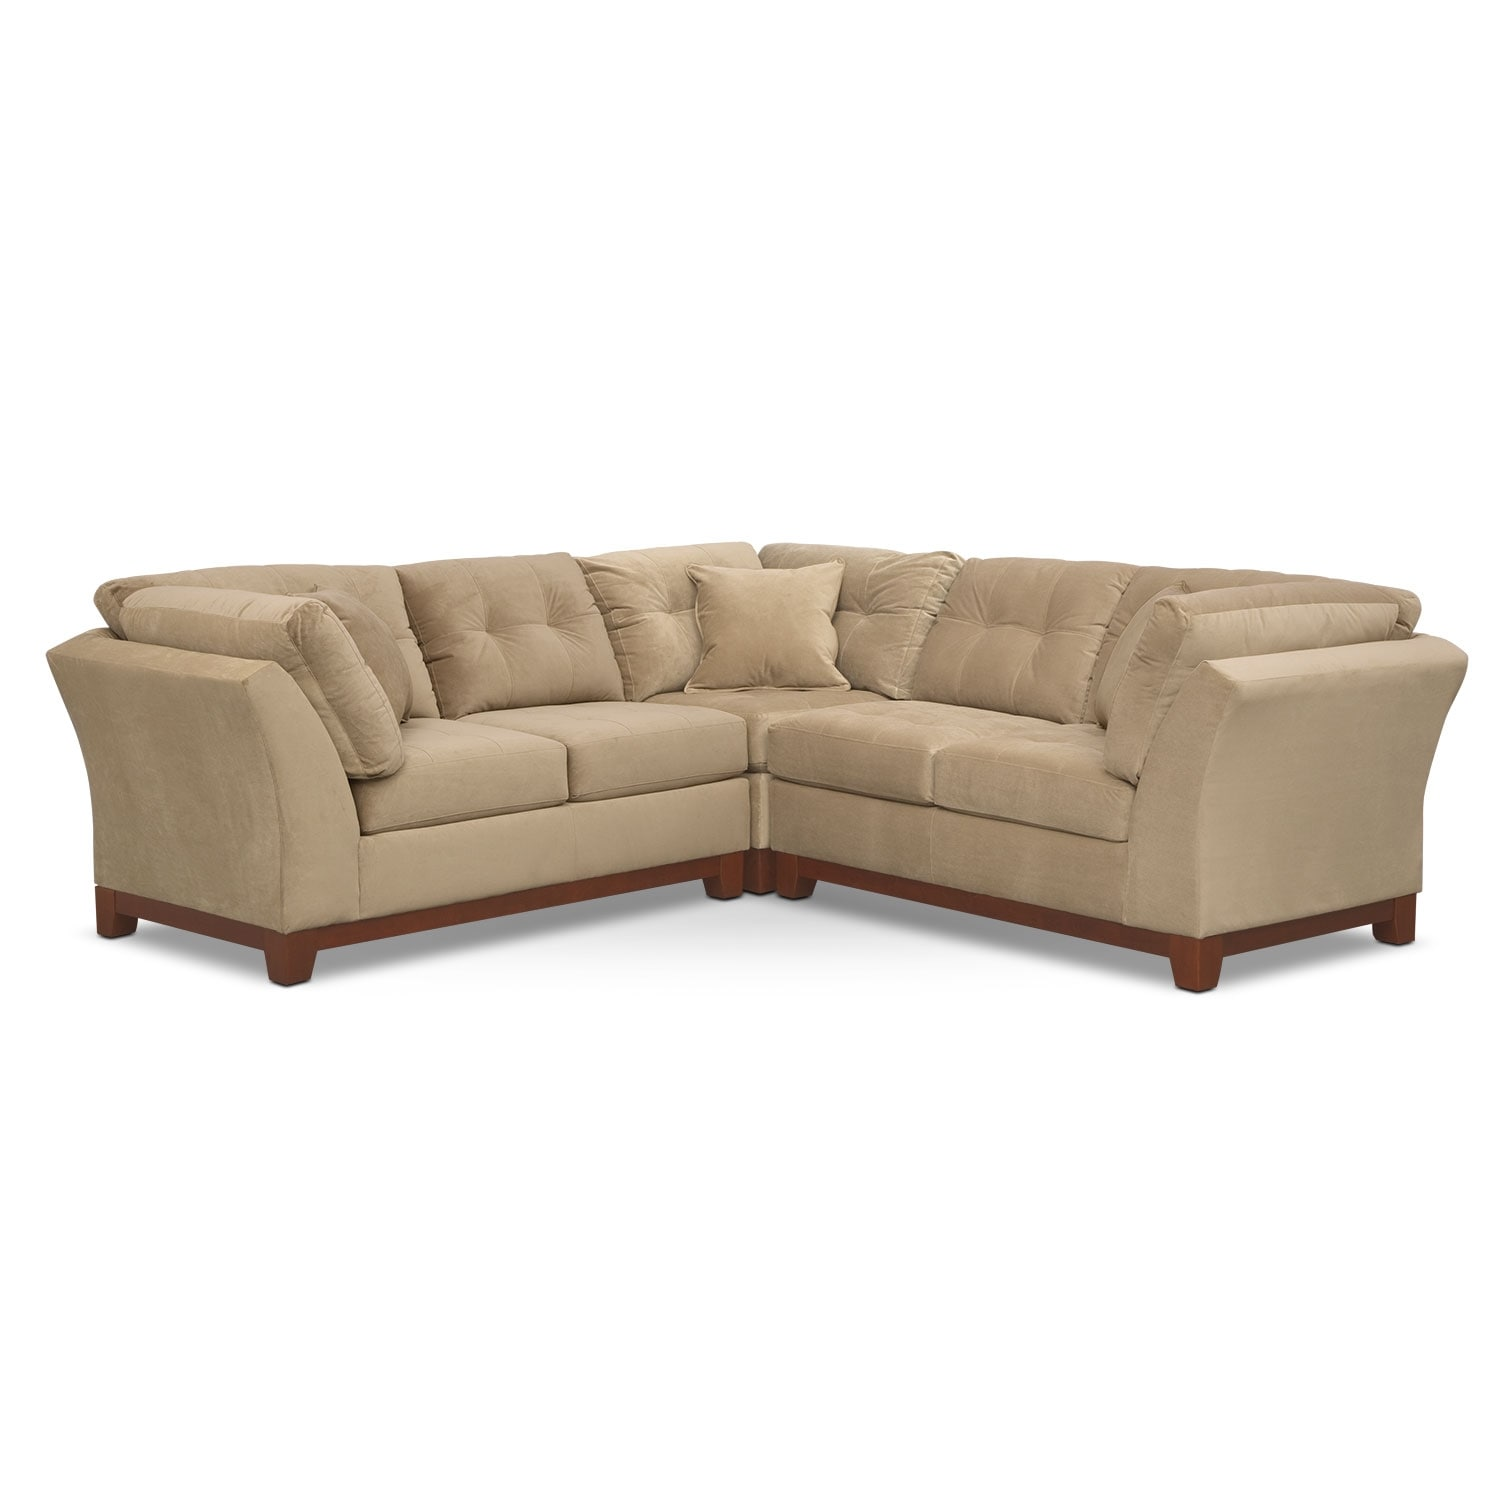 Living Room Furniture - Solace 3-Piece Sectional - Cocoa